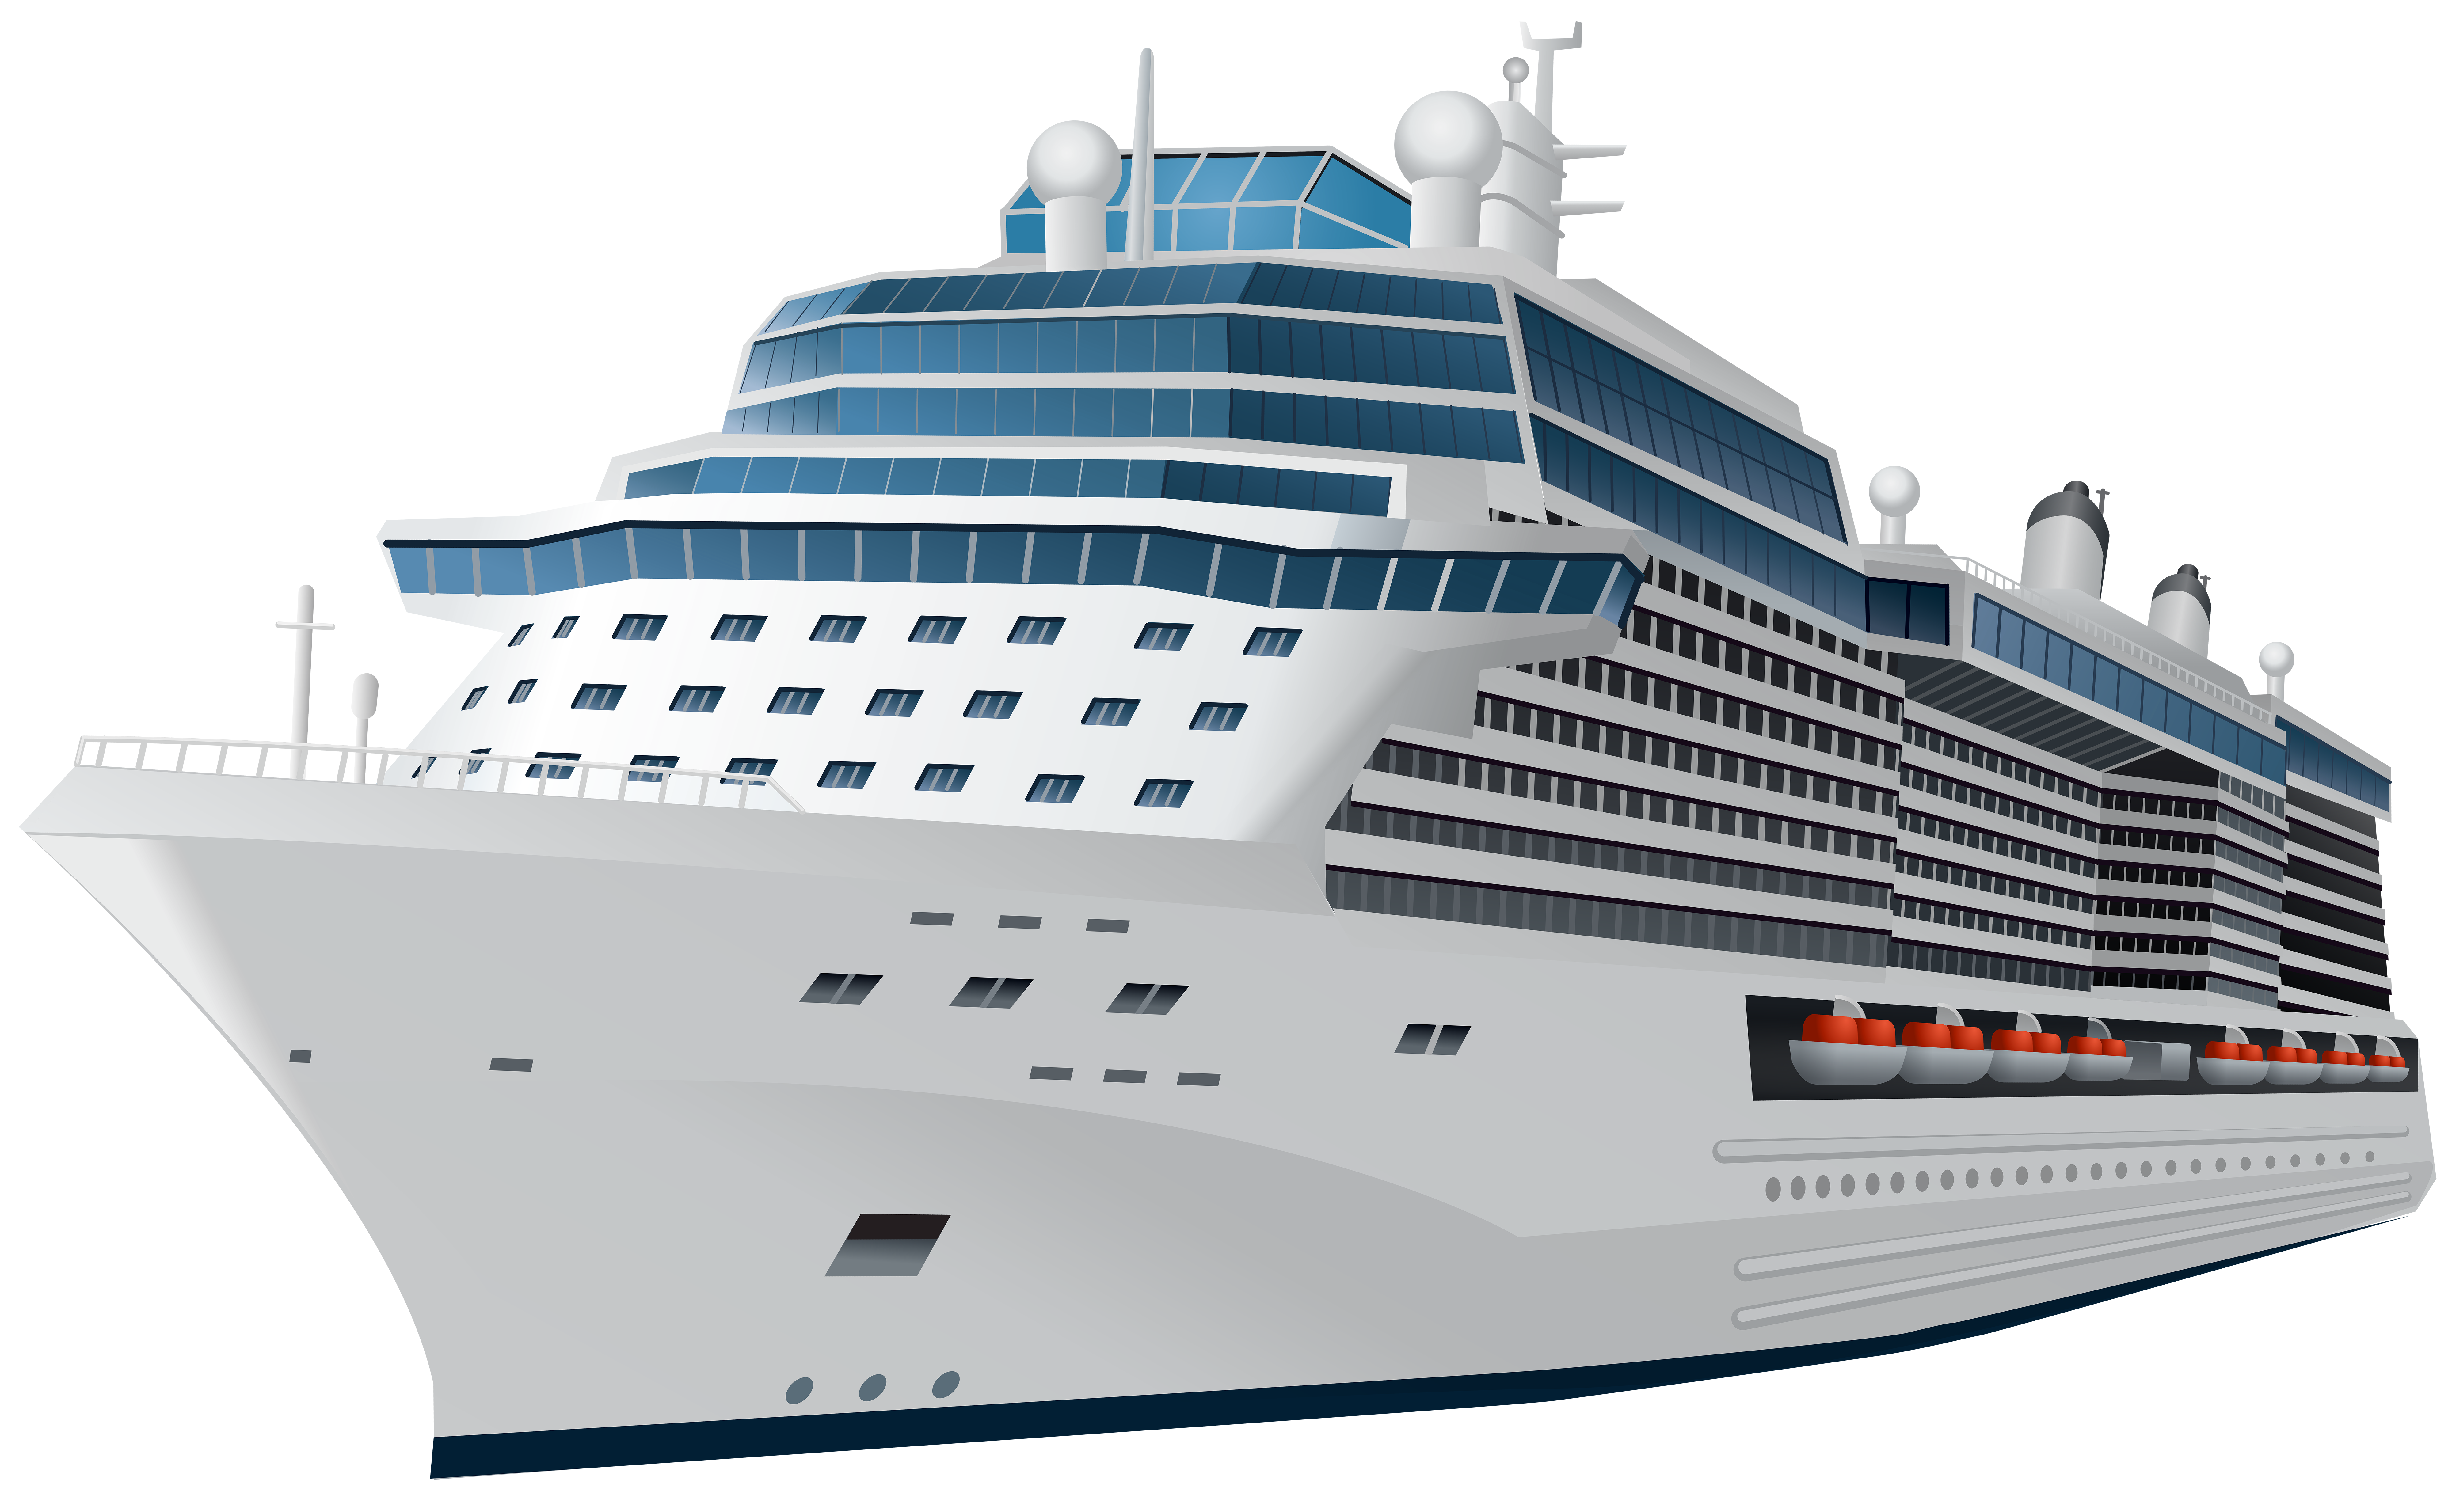 Cruise Ship Transparent Png Clip Art Image Gallery Yopriceville High Quality Images And Transparent Png Free Clipart Clip Art Cruise Ship Art Images